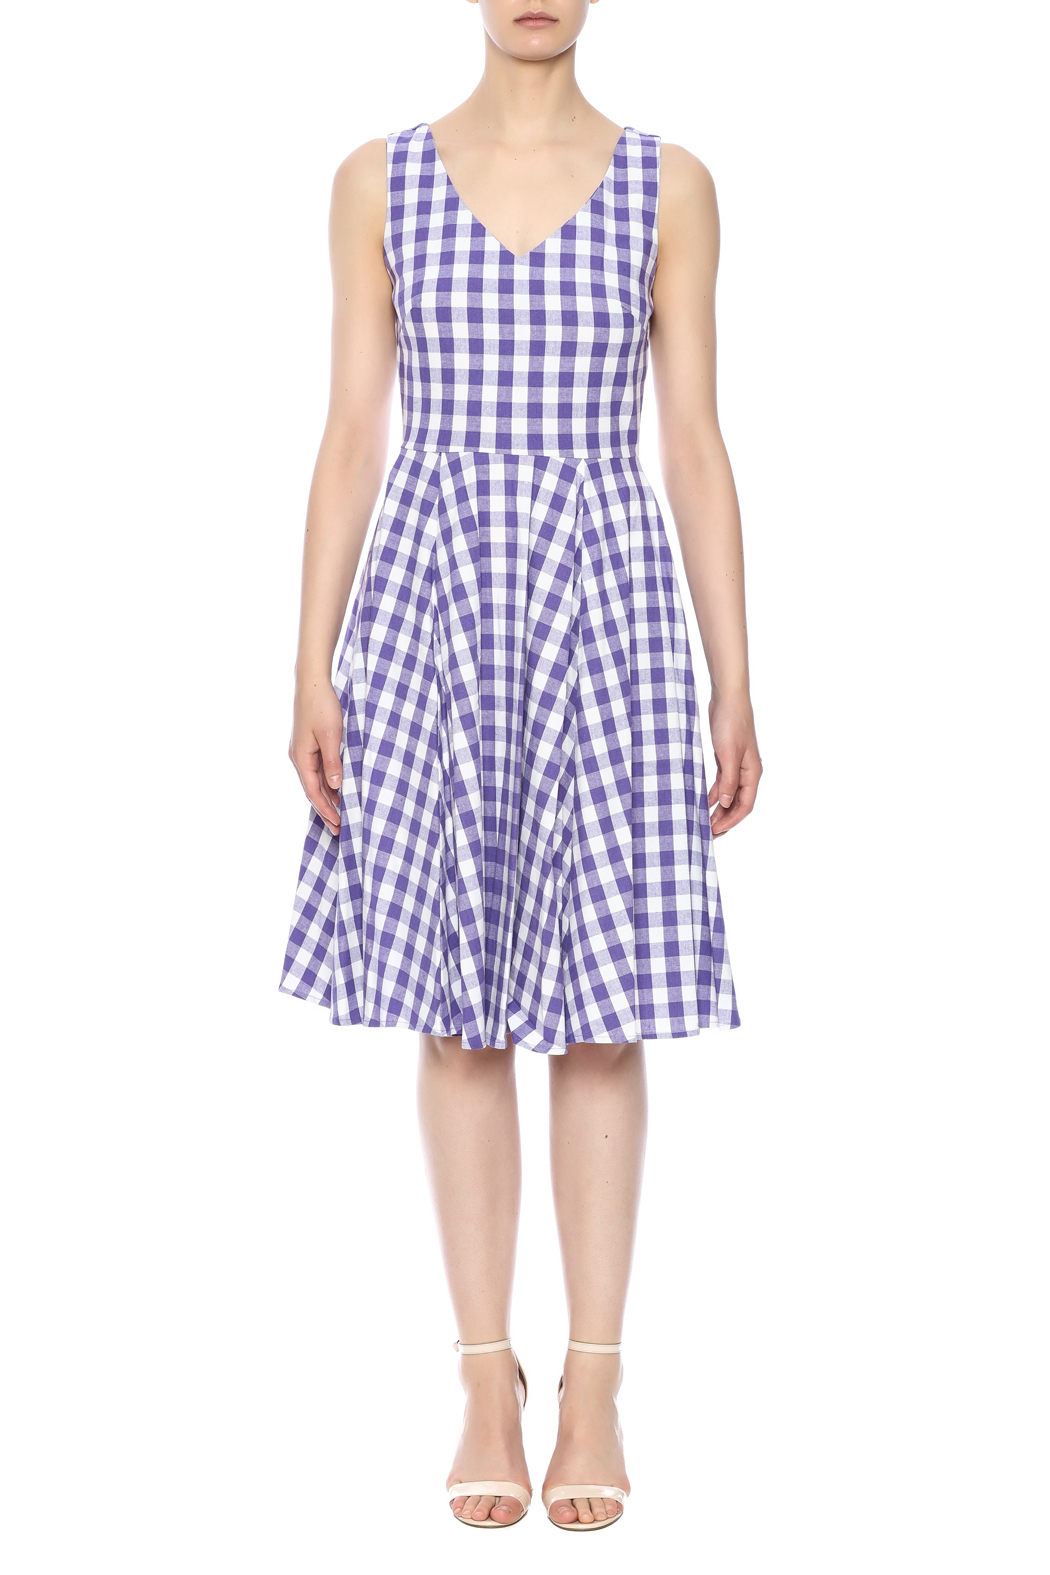 effeca3ba6c Ixia Gingham Pocket Dress from Florida by Mad Hatter General Store ...